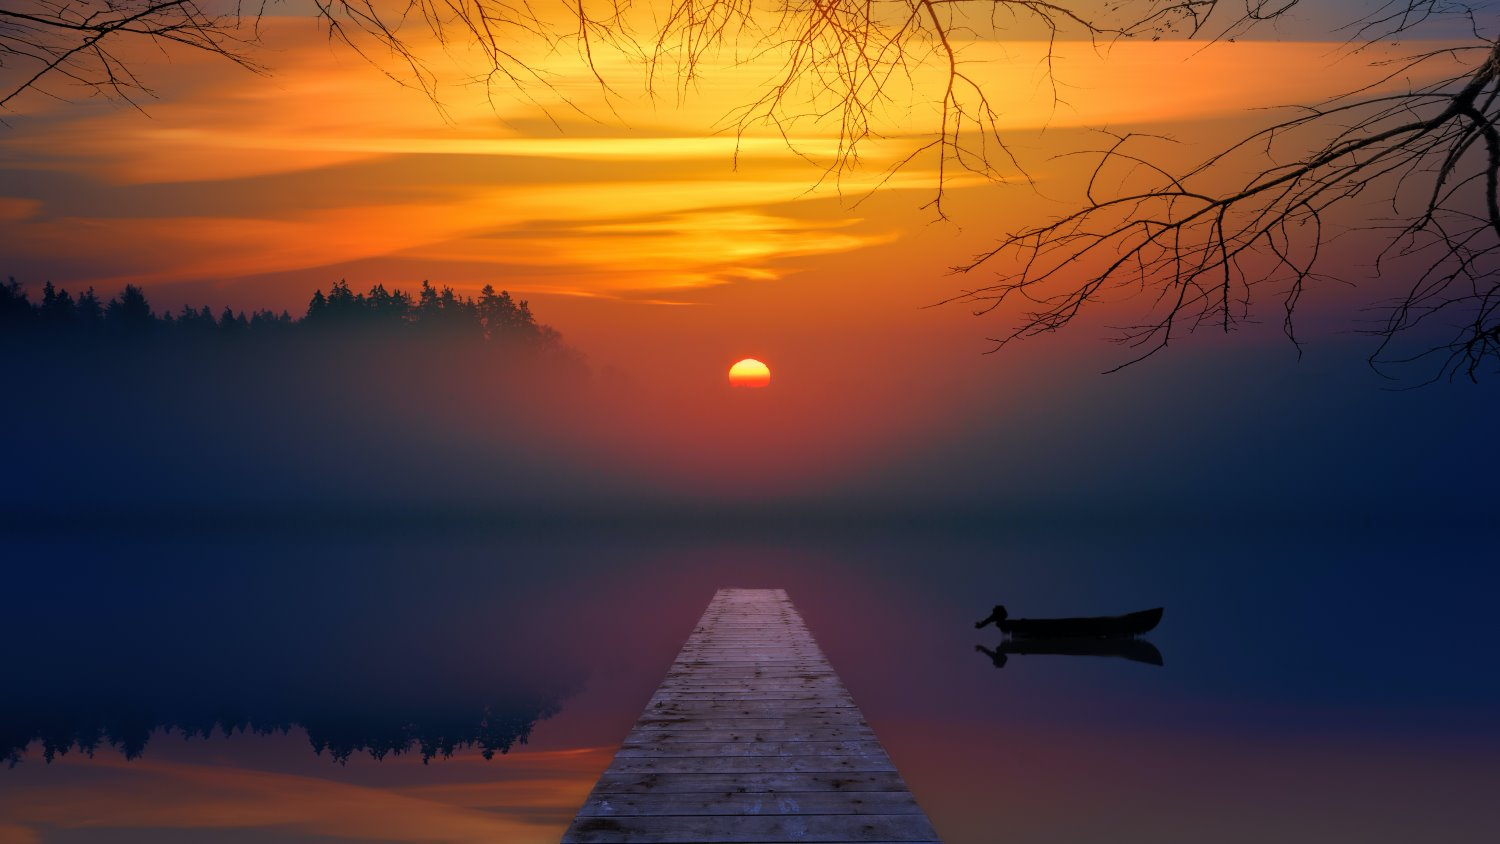 sunset photography tips dock with boat